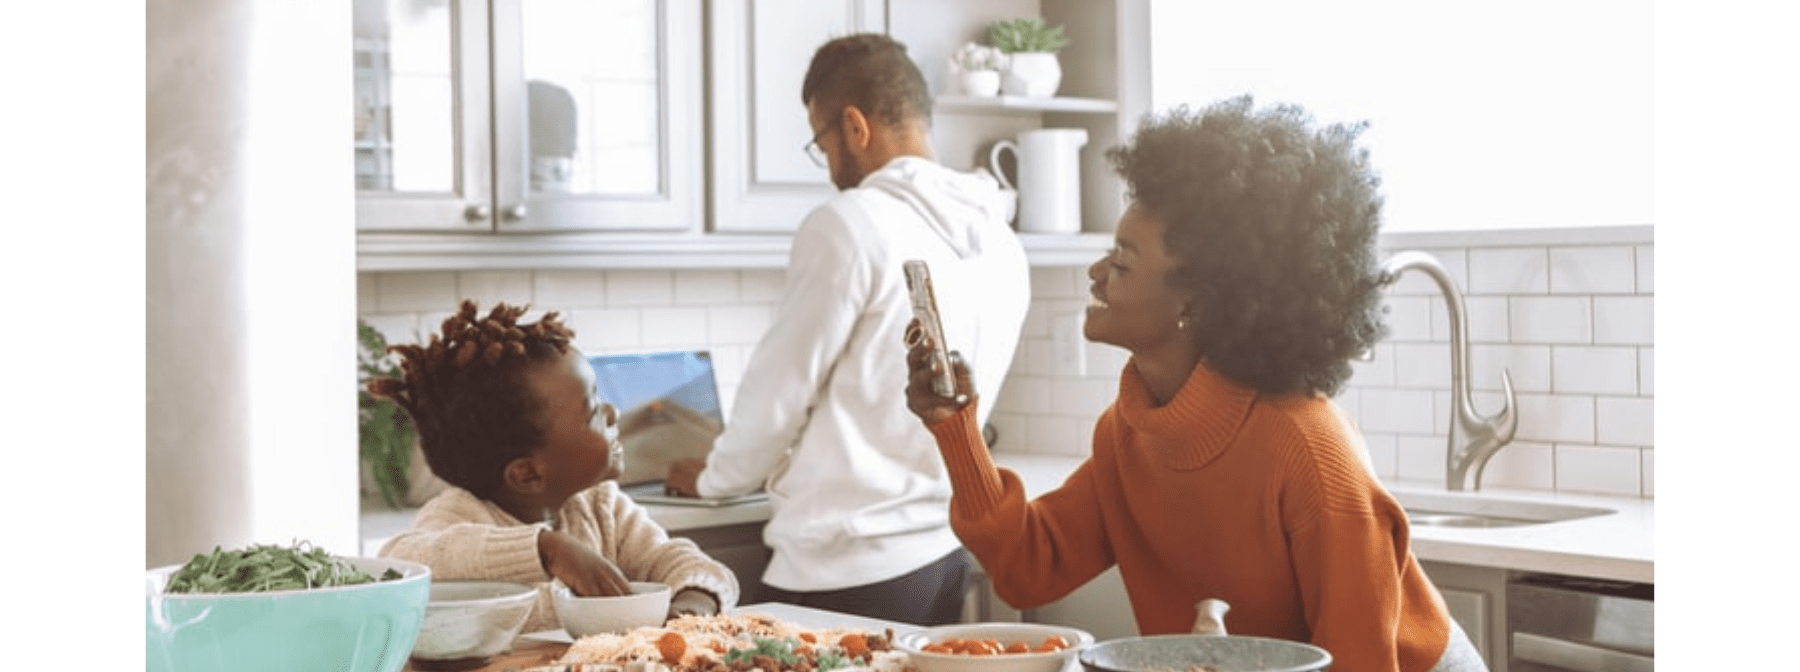 Did Our Parents Really Know Best? Assessing the Things Our Parents Told Us About Eating